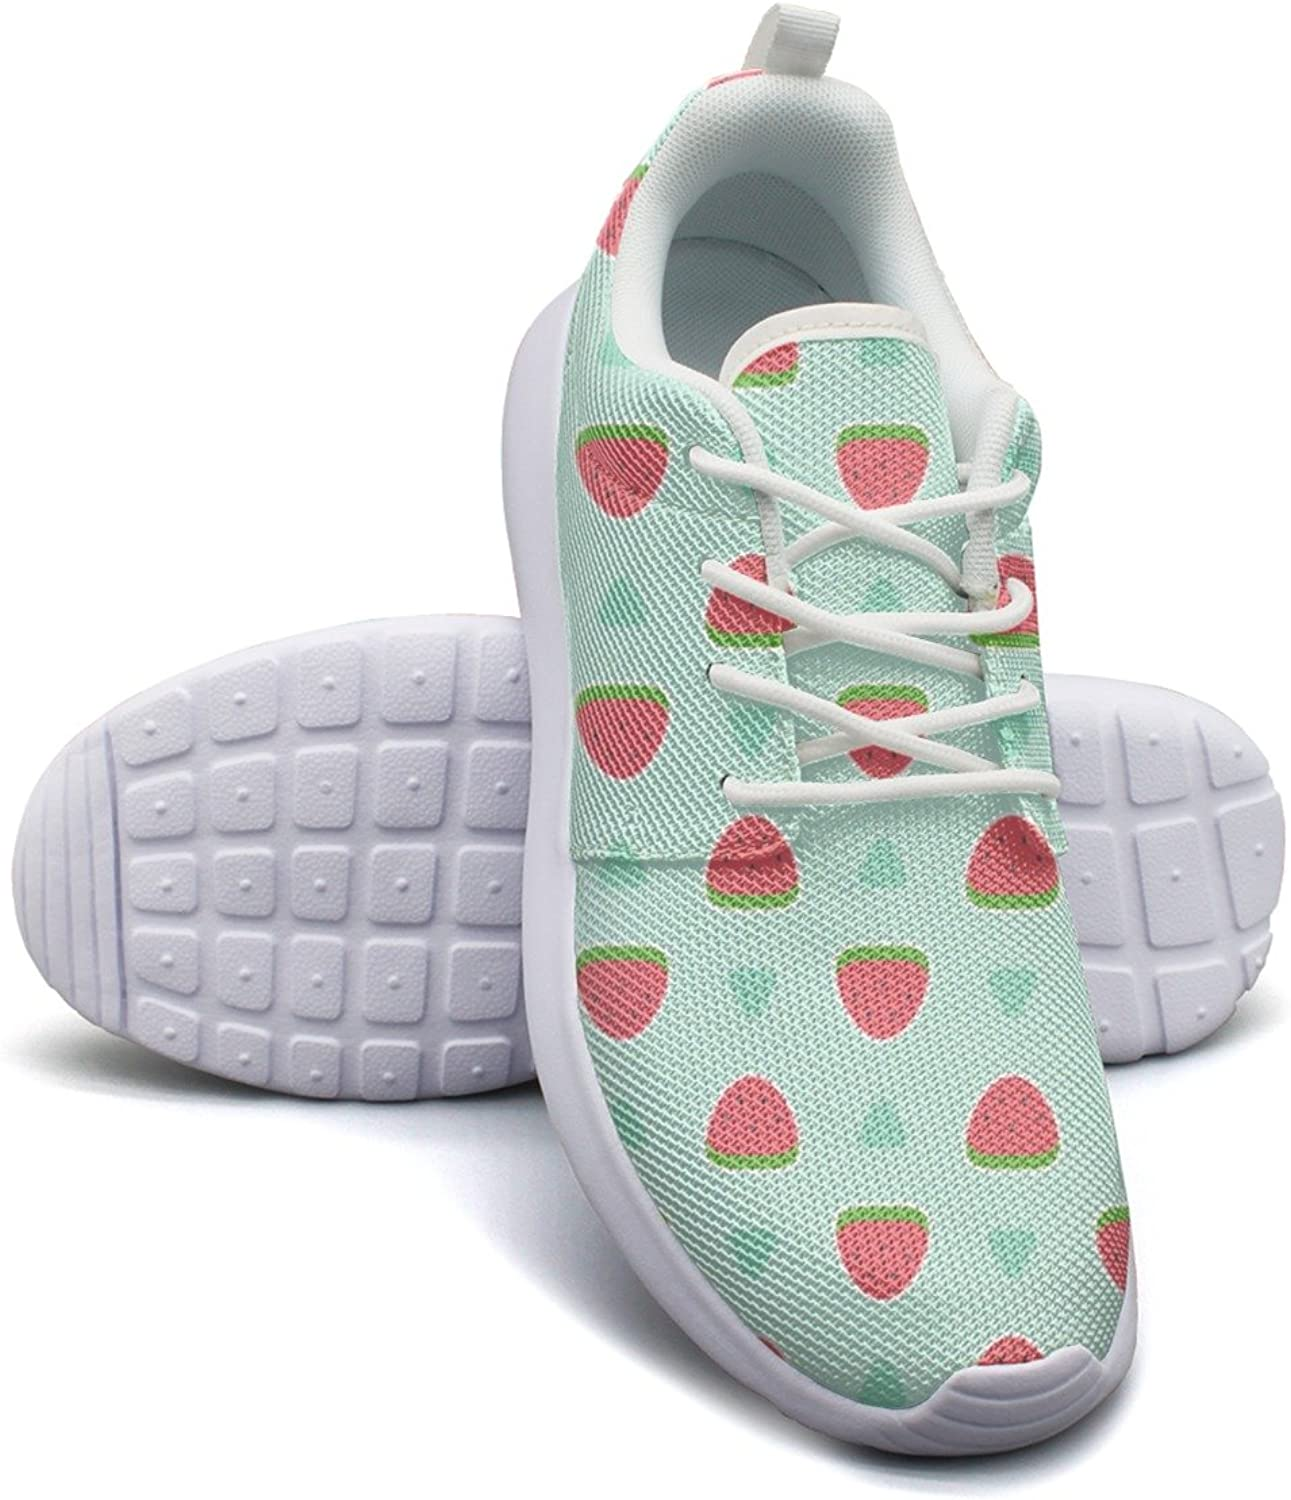 Mini Watermelon in bluee Background Women's Lightweight Mesh Tennis Sneakers Exclusive Gym shoes